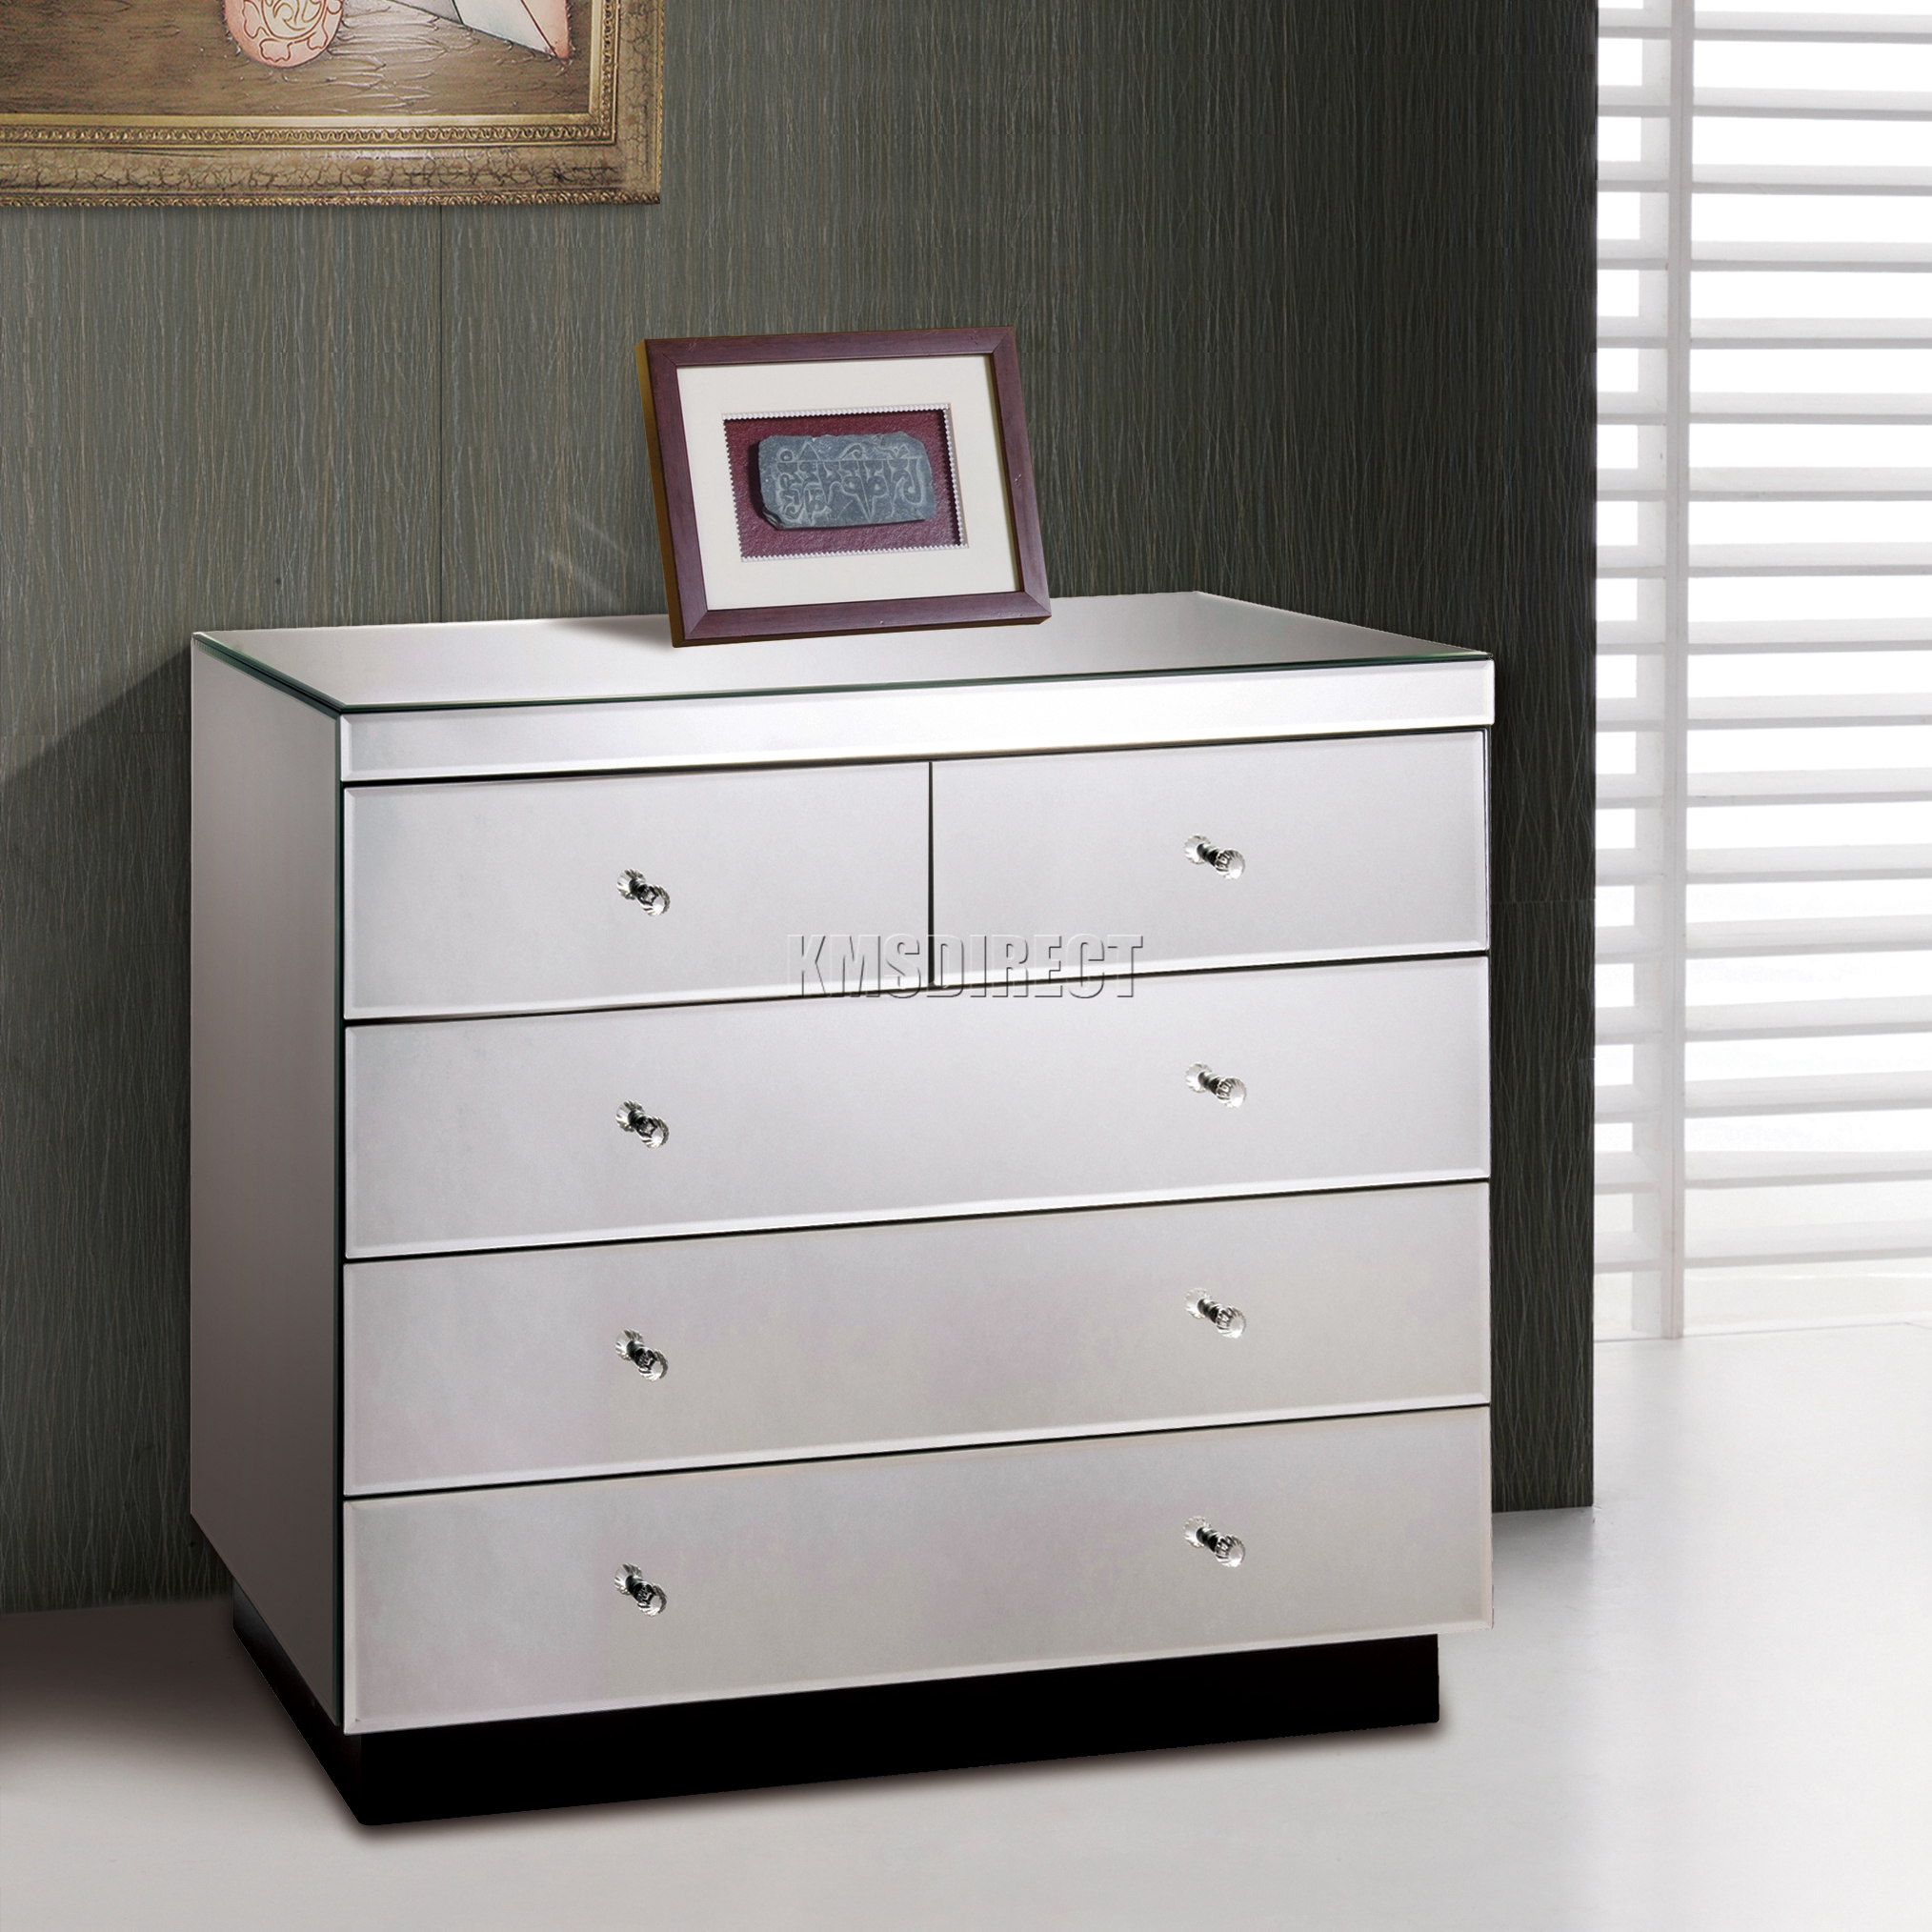 Westwood Mirrored Furniture Glass With Drawer Chest Cabinet